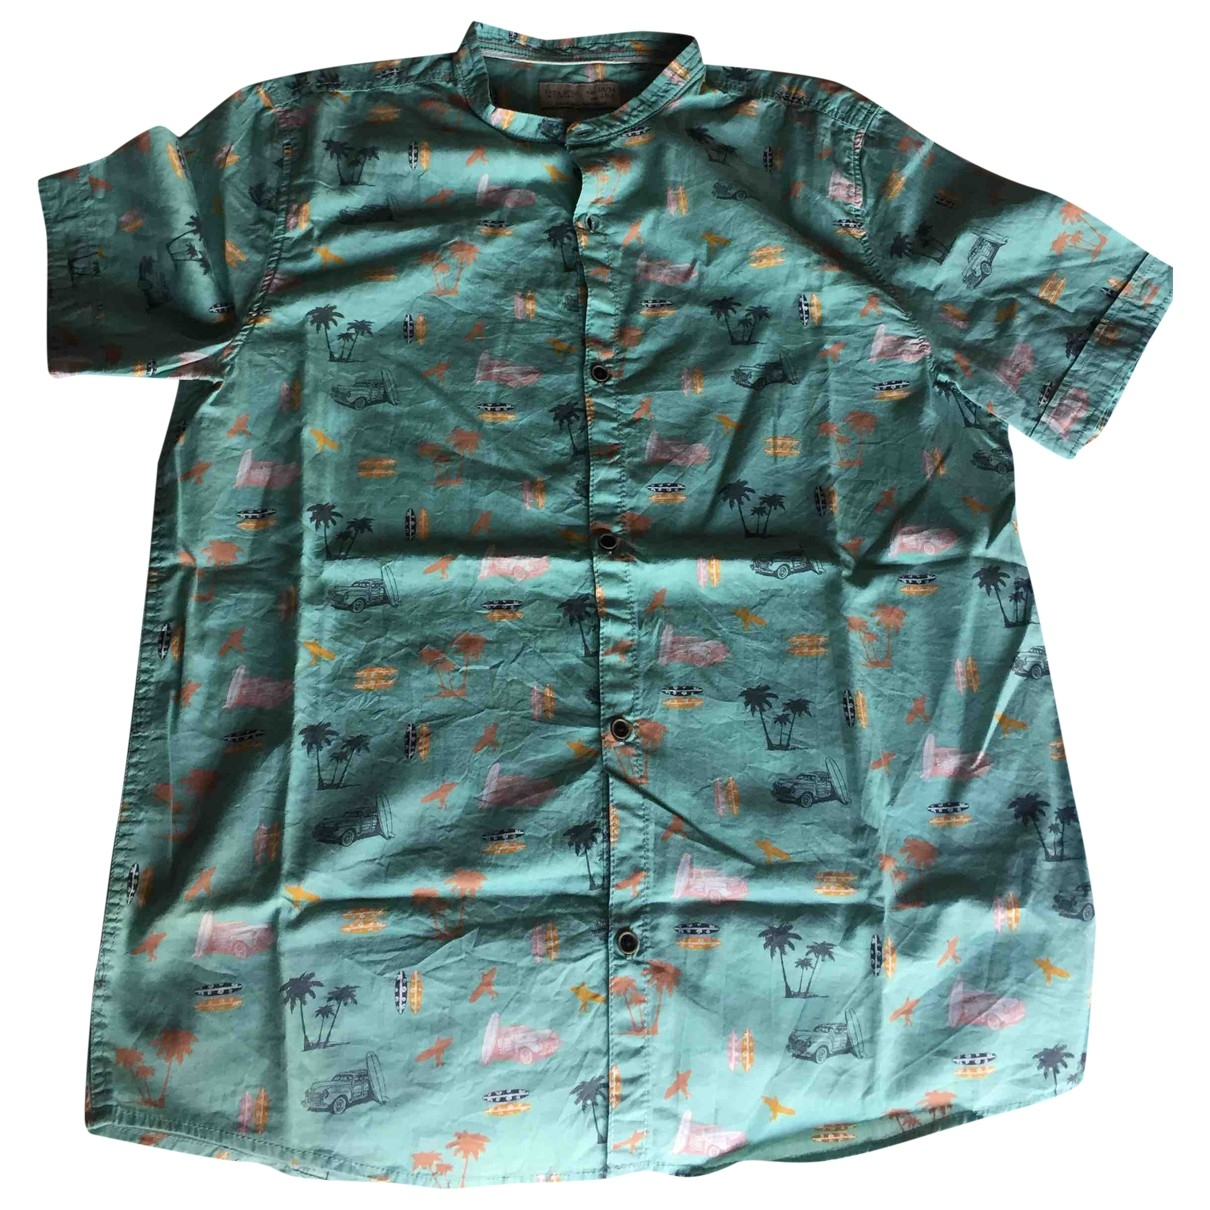 Zara \N Green Cotton  top for Kids 14 years - S FR